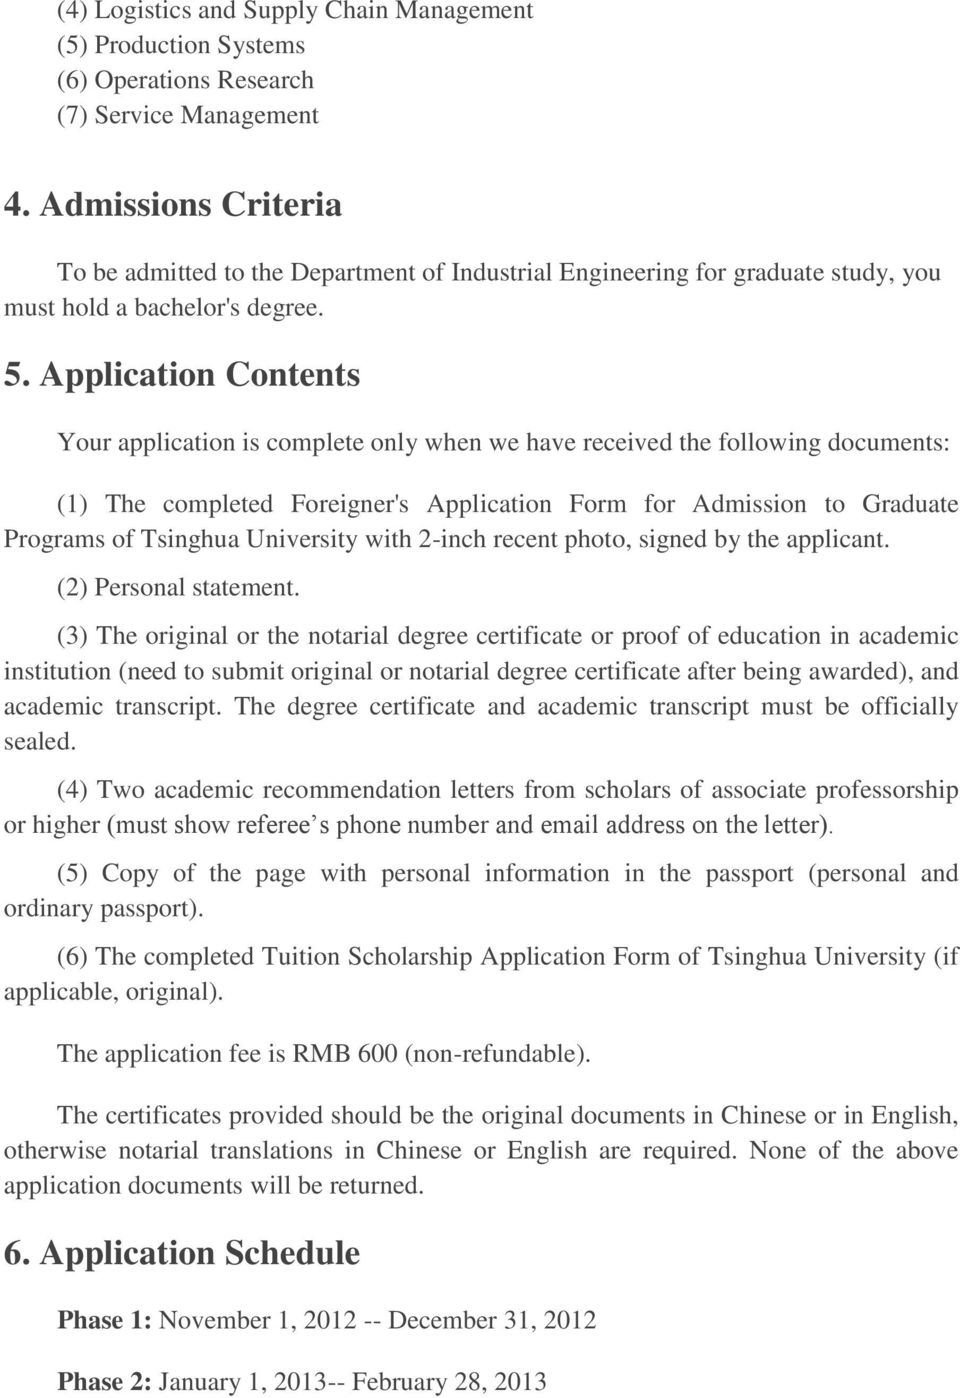 Application Contents Your application is complete only when we have received the following documents: (1) The completed Foreigner's Application Form for Admission to Graduate Programs of Tsinghua